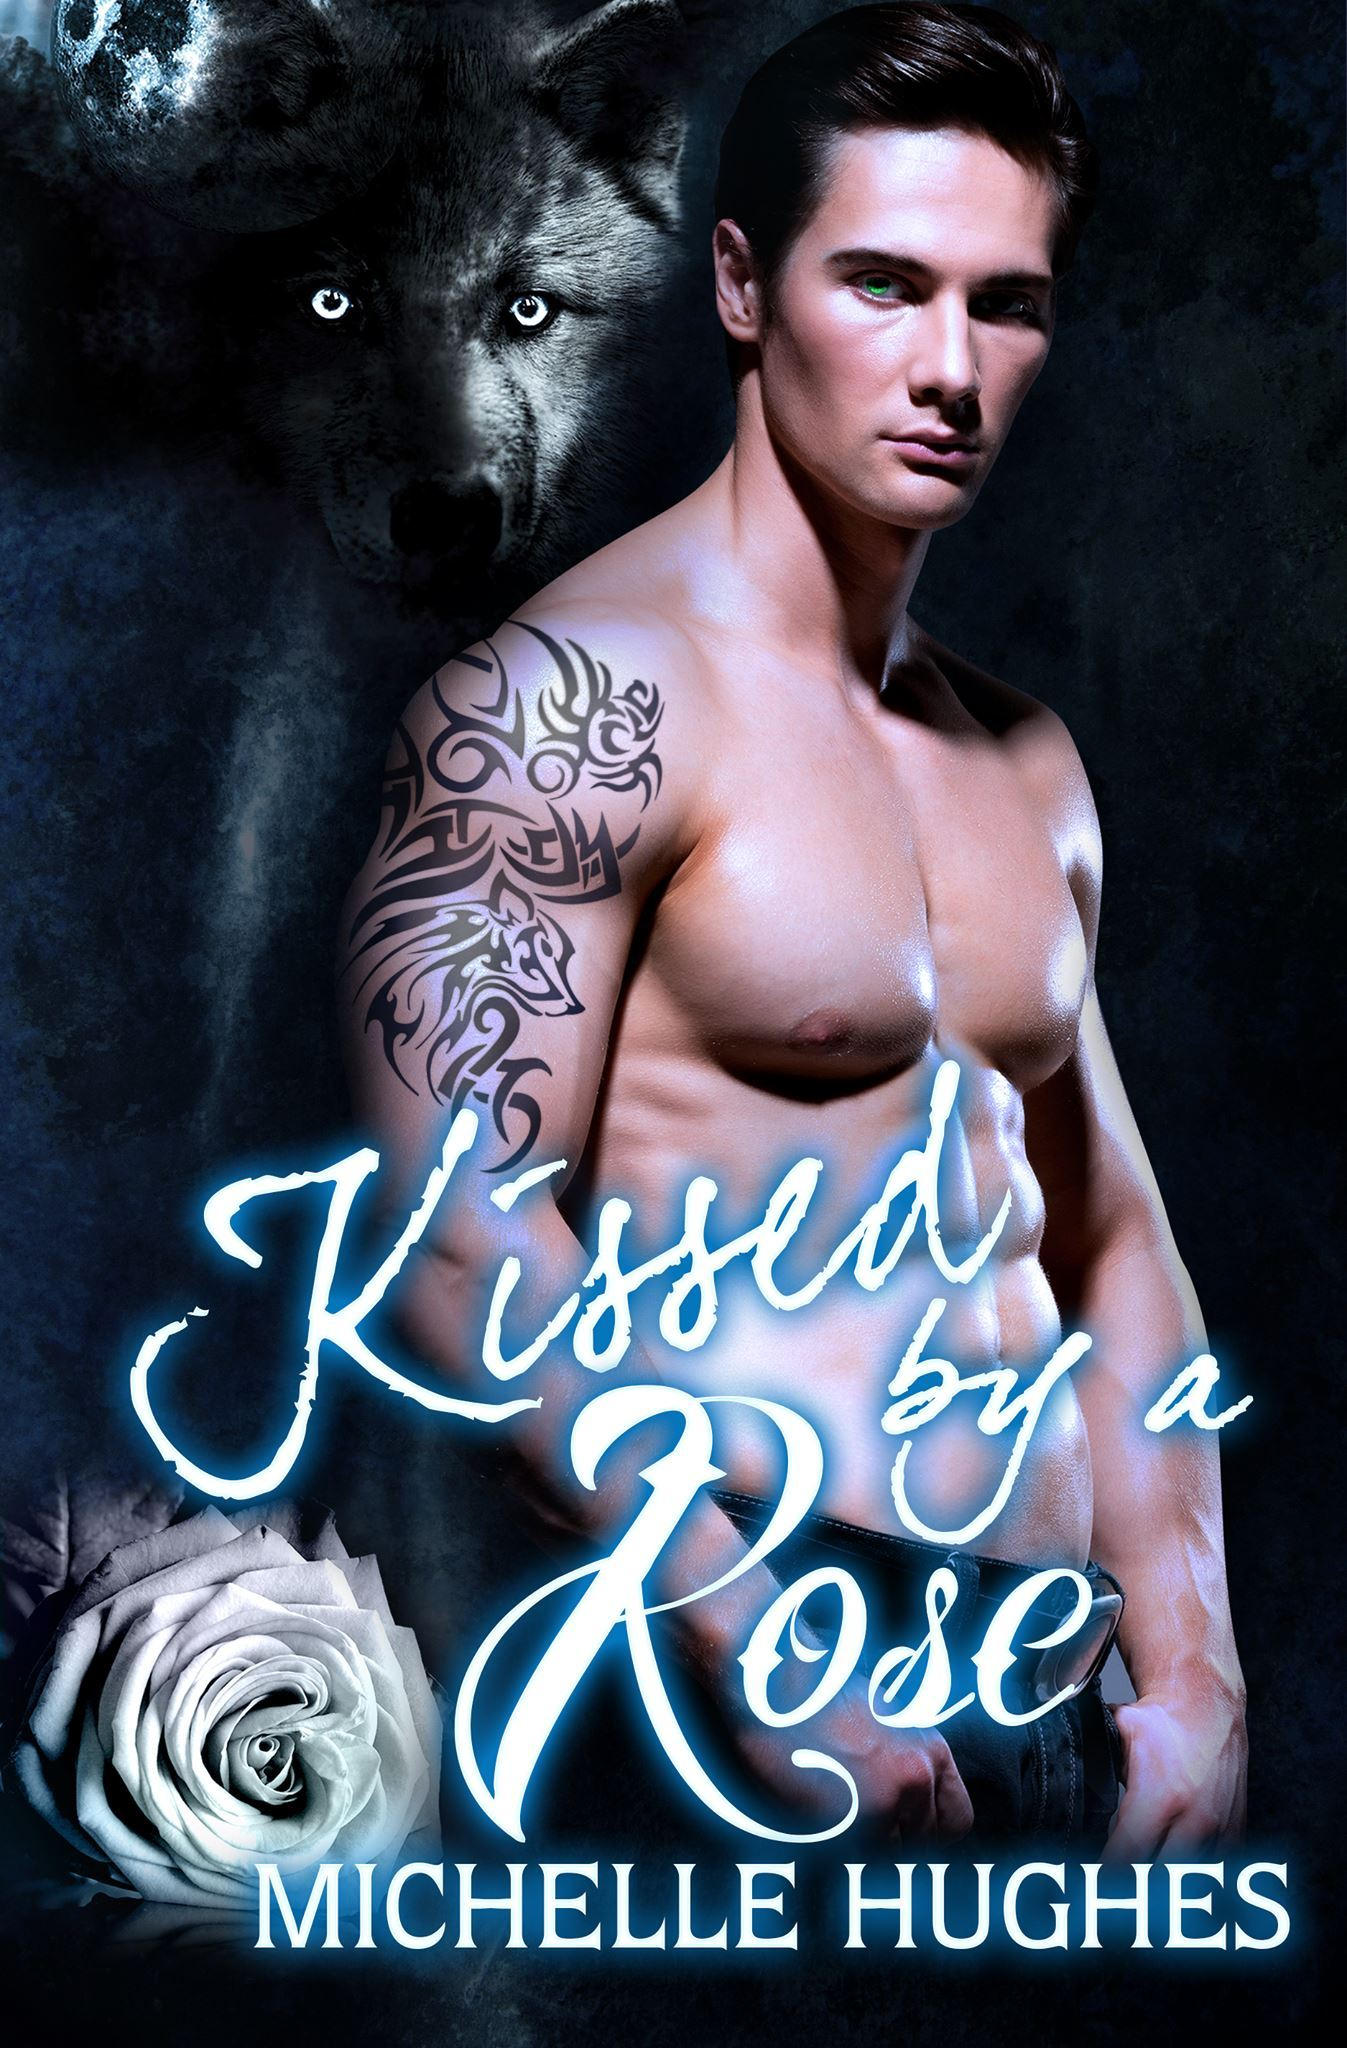 Kissed a Rose (Phantom Wolves, #1) by Michelle Hughes